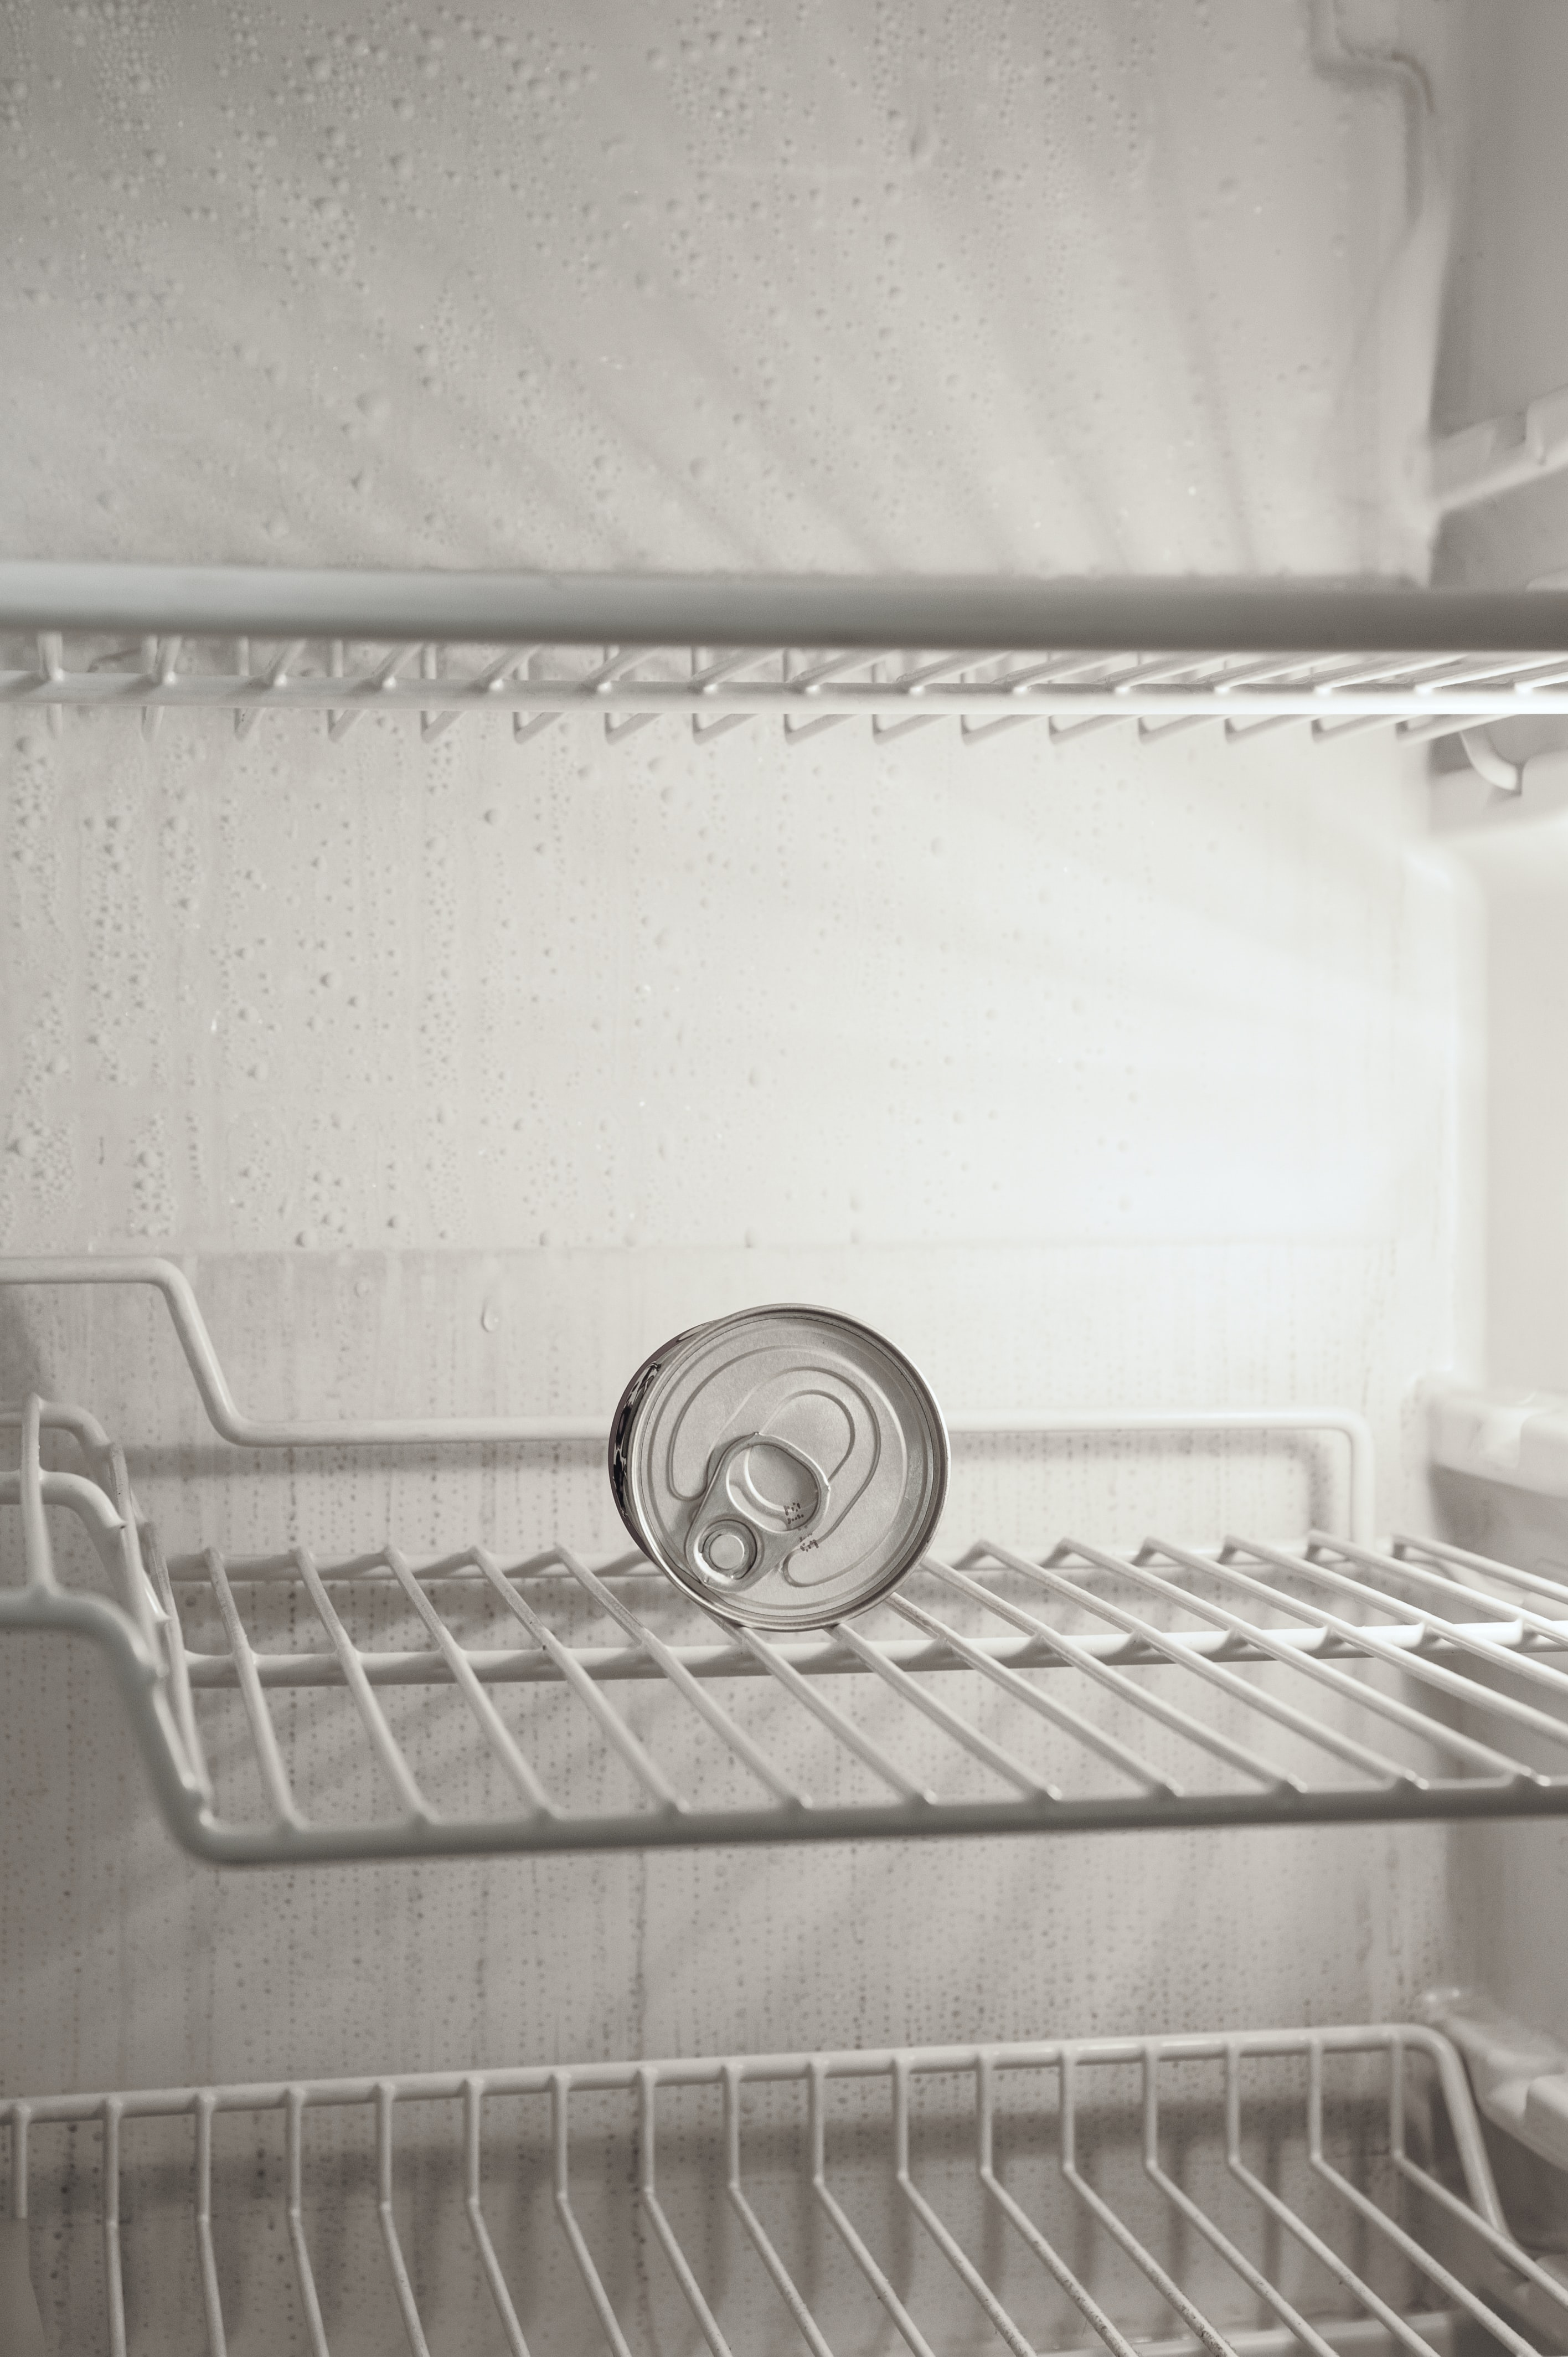 beverage can in refrigerato